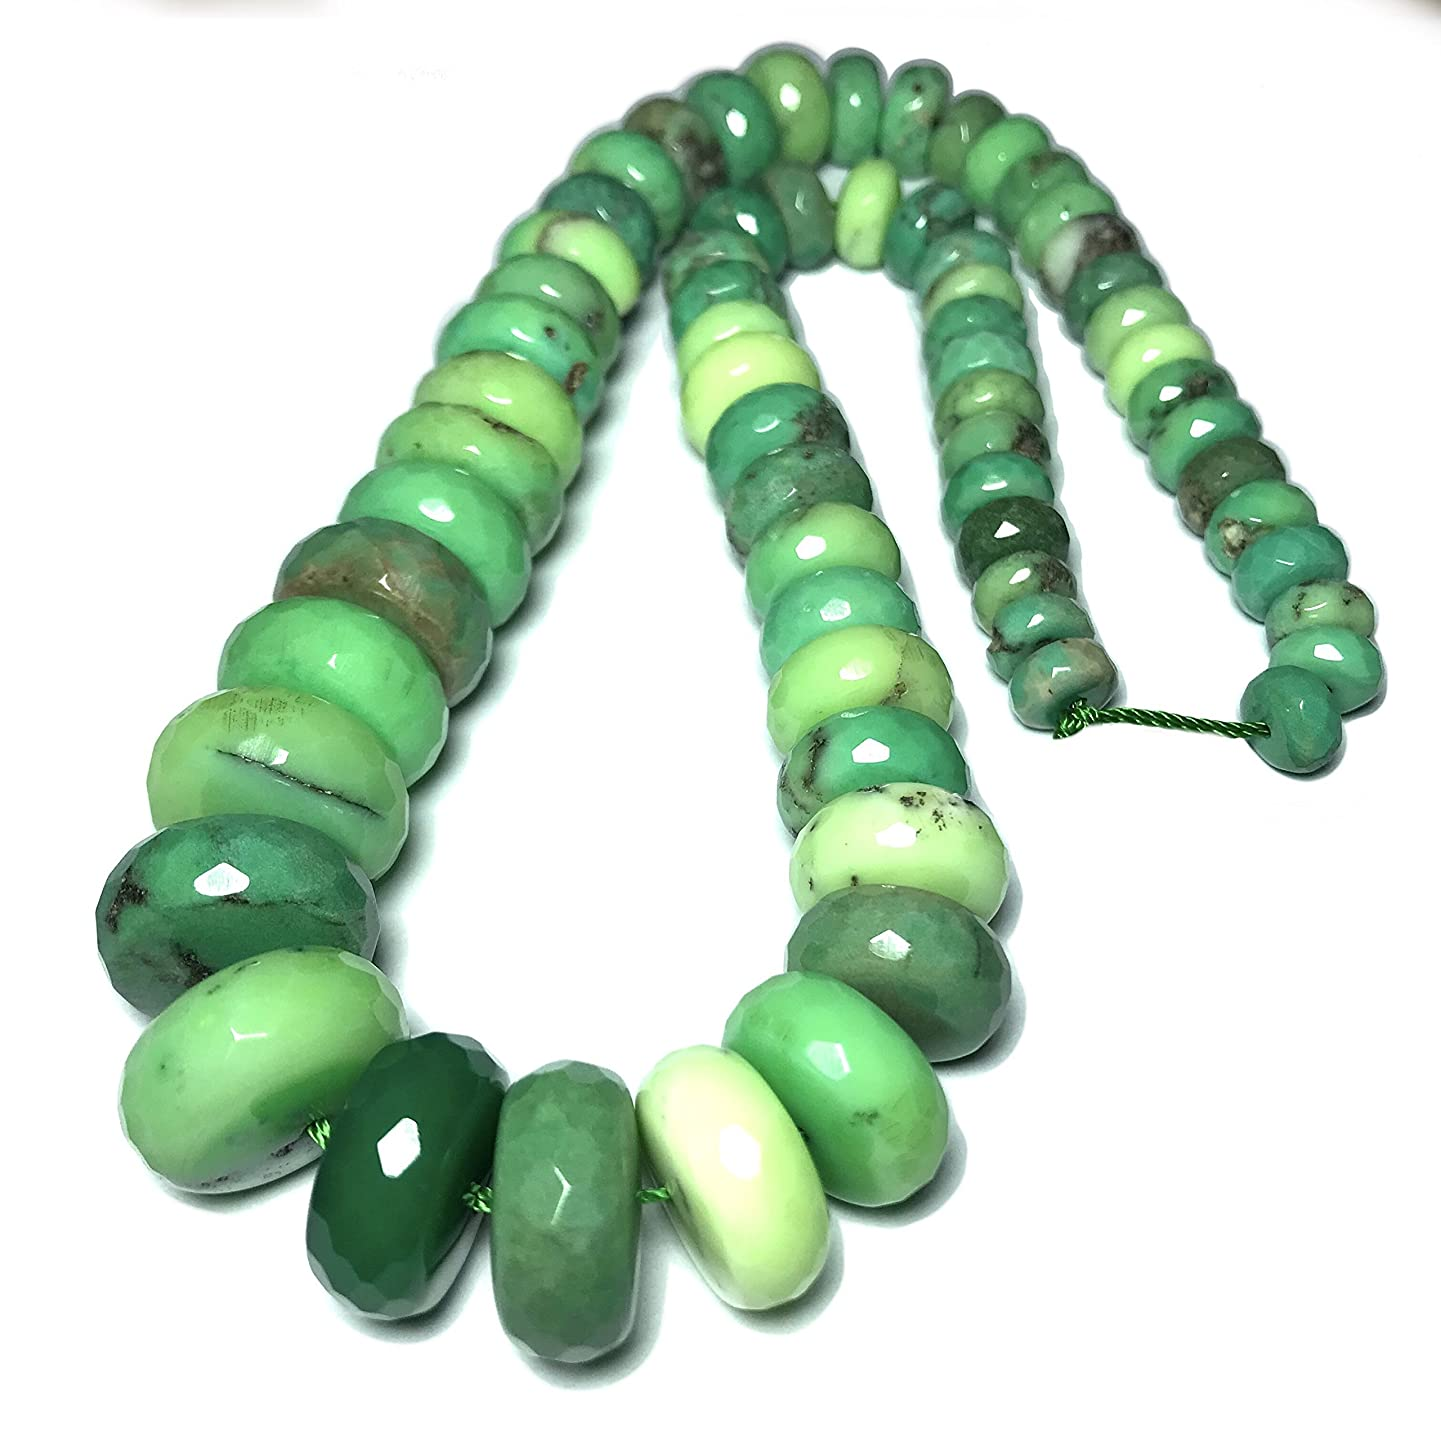 [ABCgems] Rare Graduated Australian Chrysoprase (Exquisite Color- Beautiful Matrix) 8-18mm Faceted Rondelle Beads for Beading & Jewelry Making